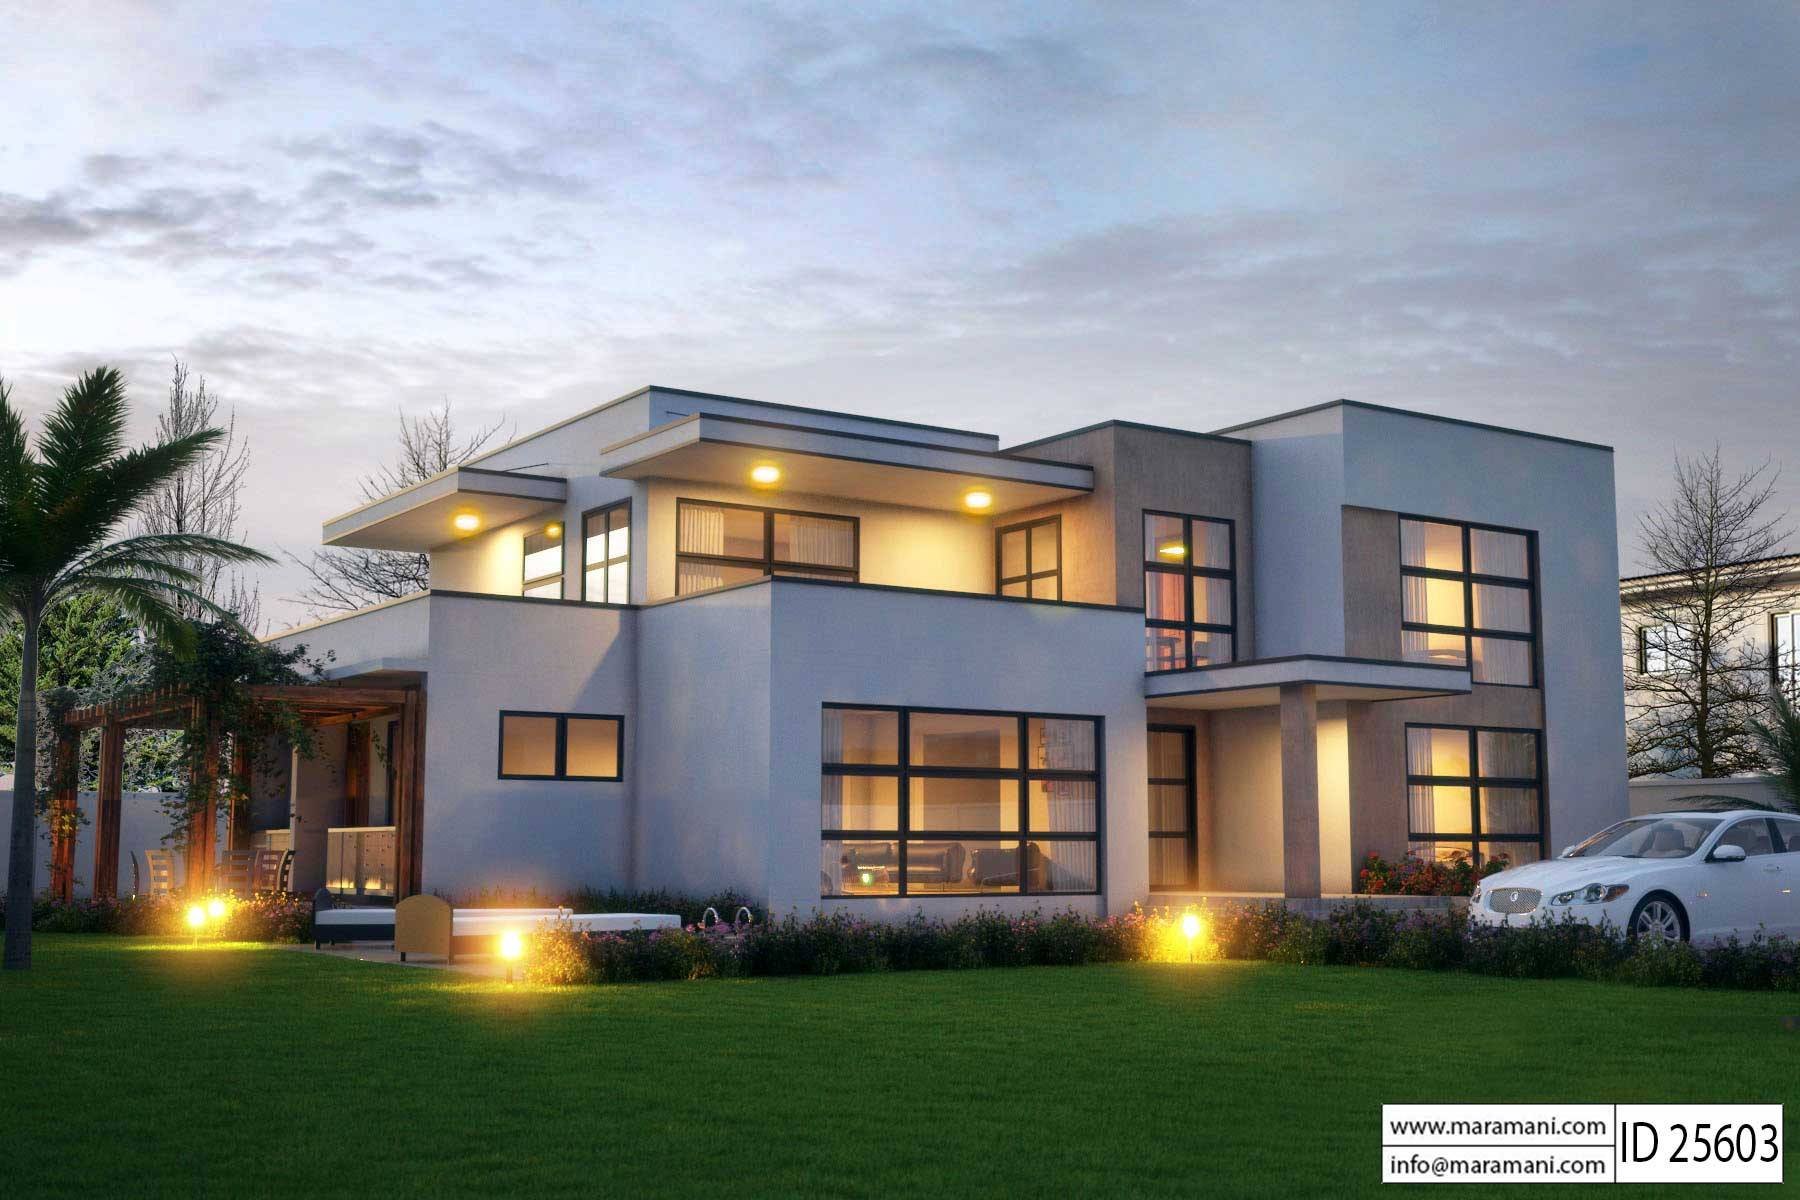 Modern 5 Bedroom House Design - Id 25603